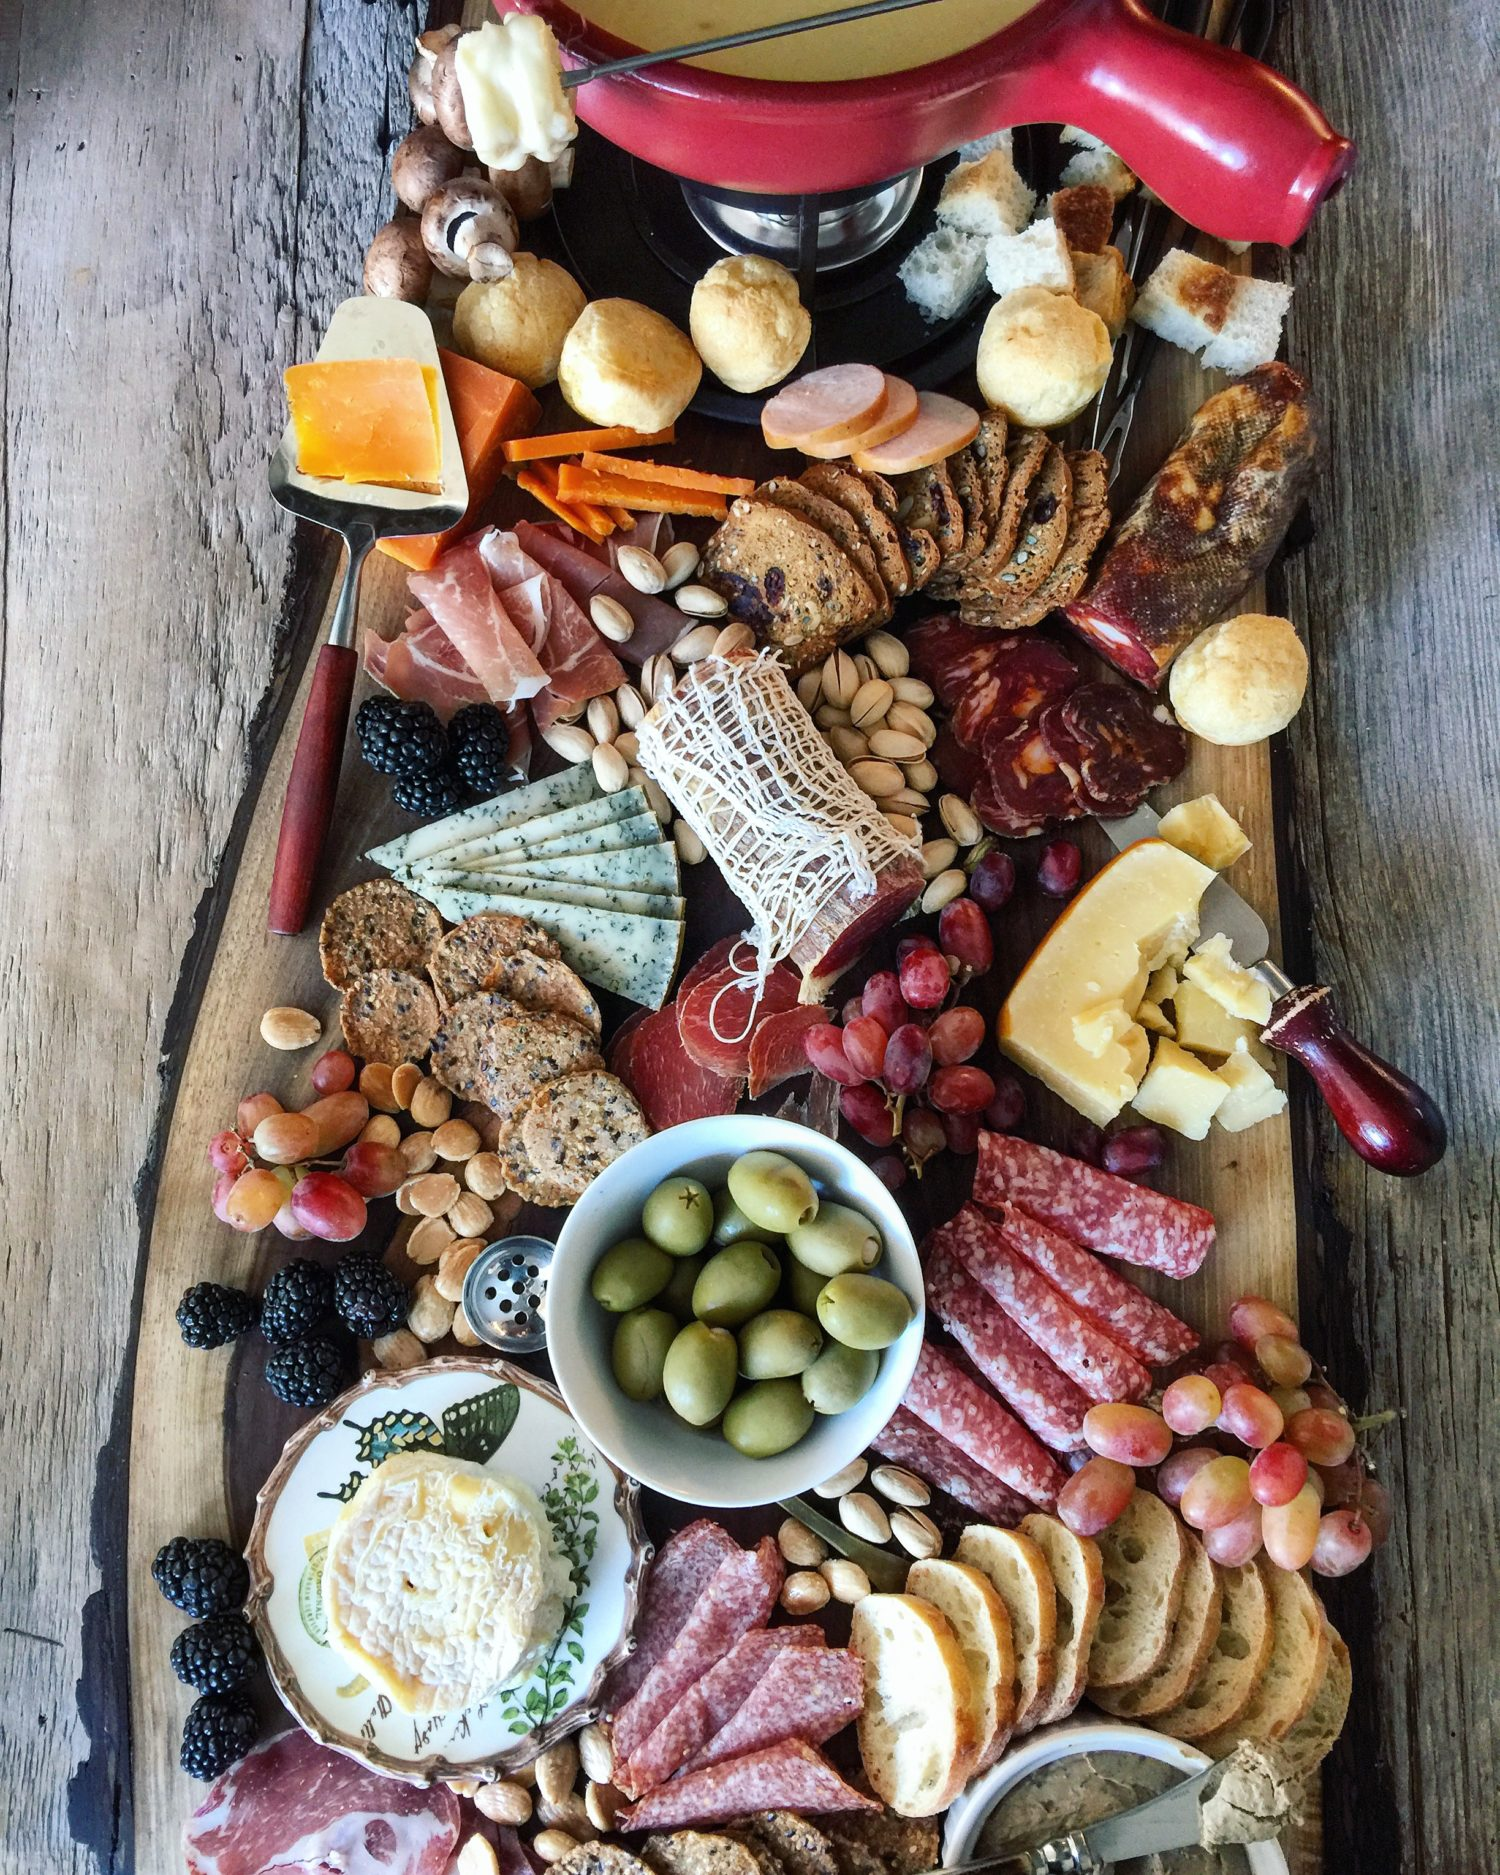 Cheese Fondue and Charcuterie